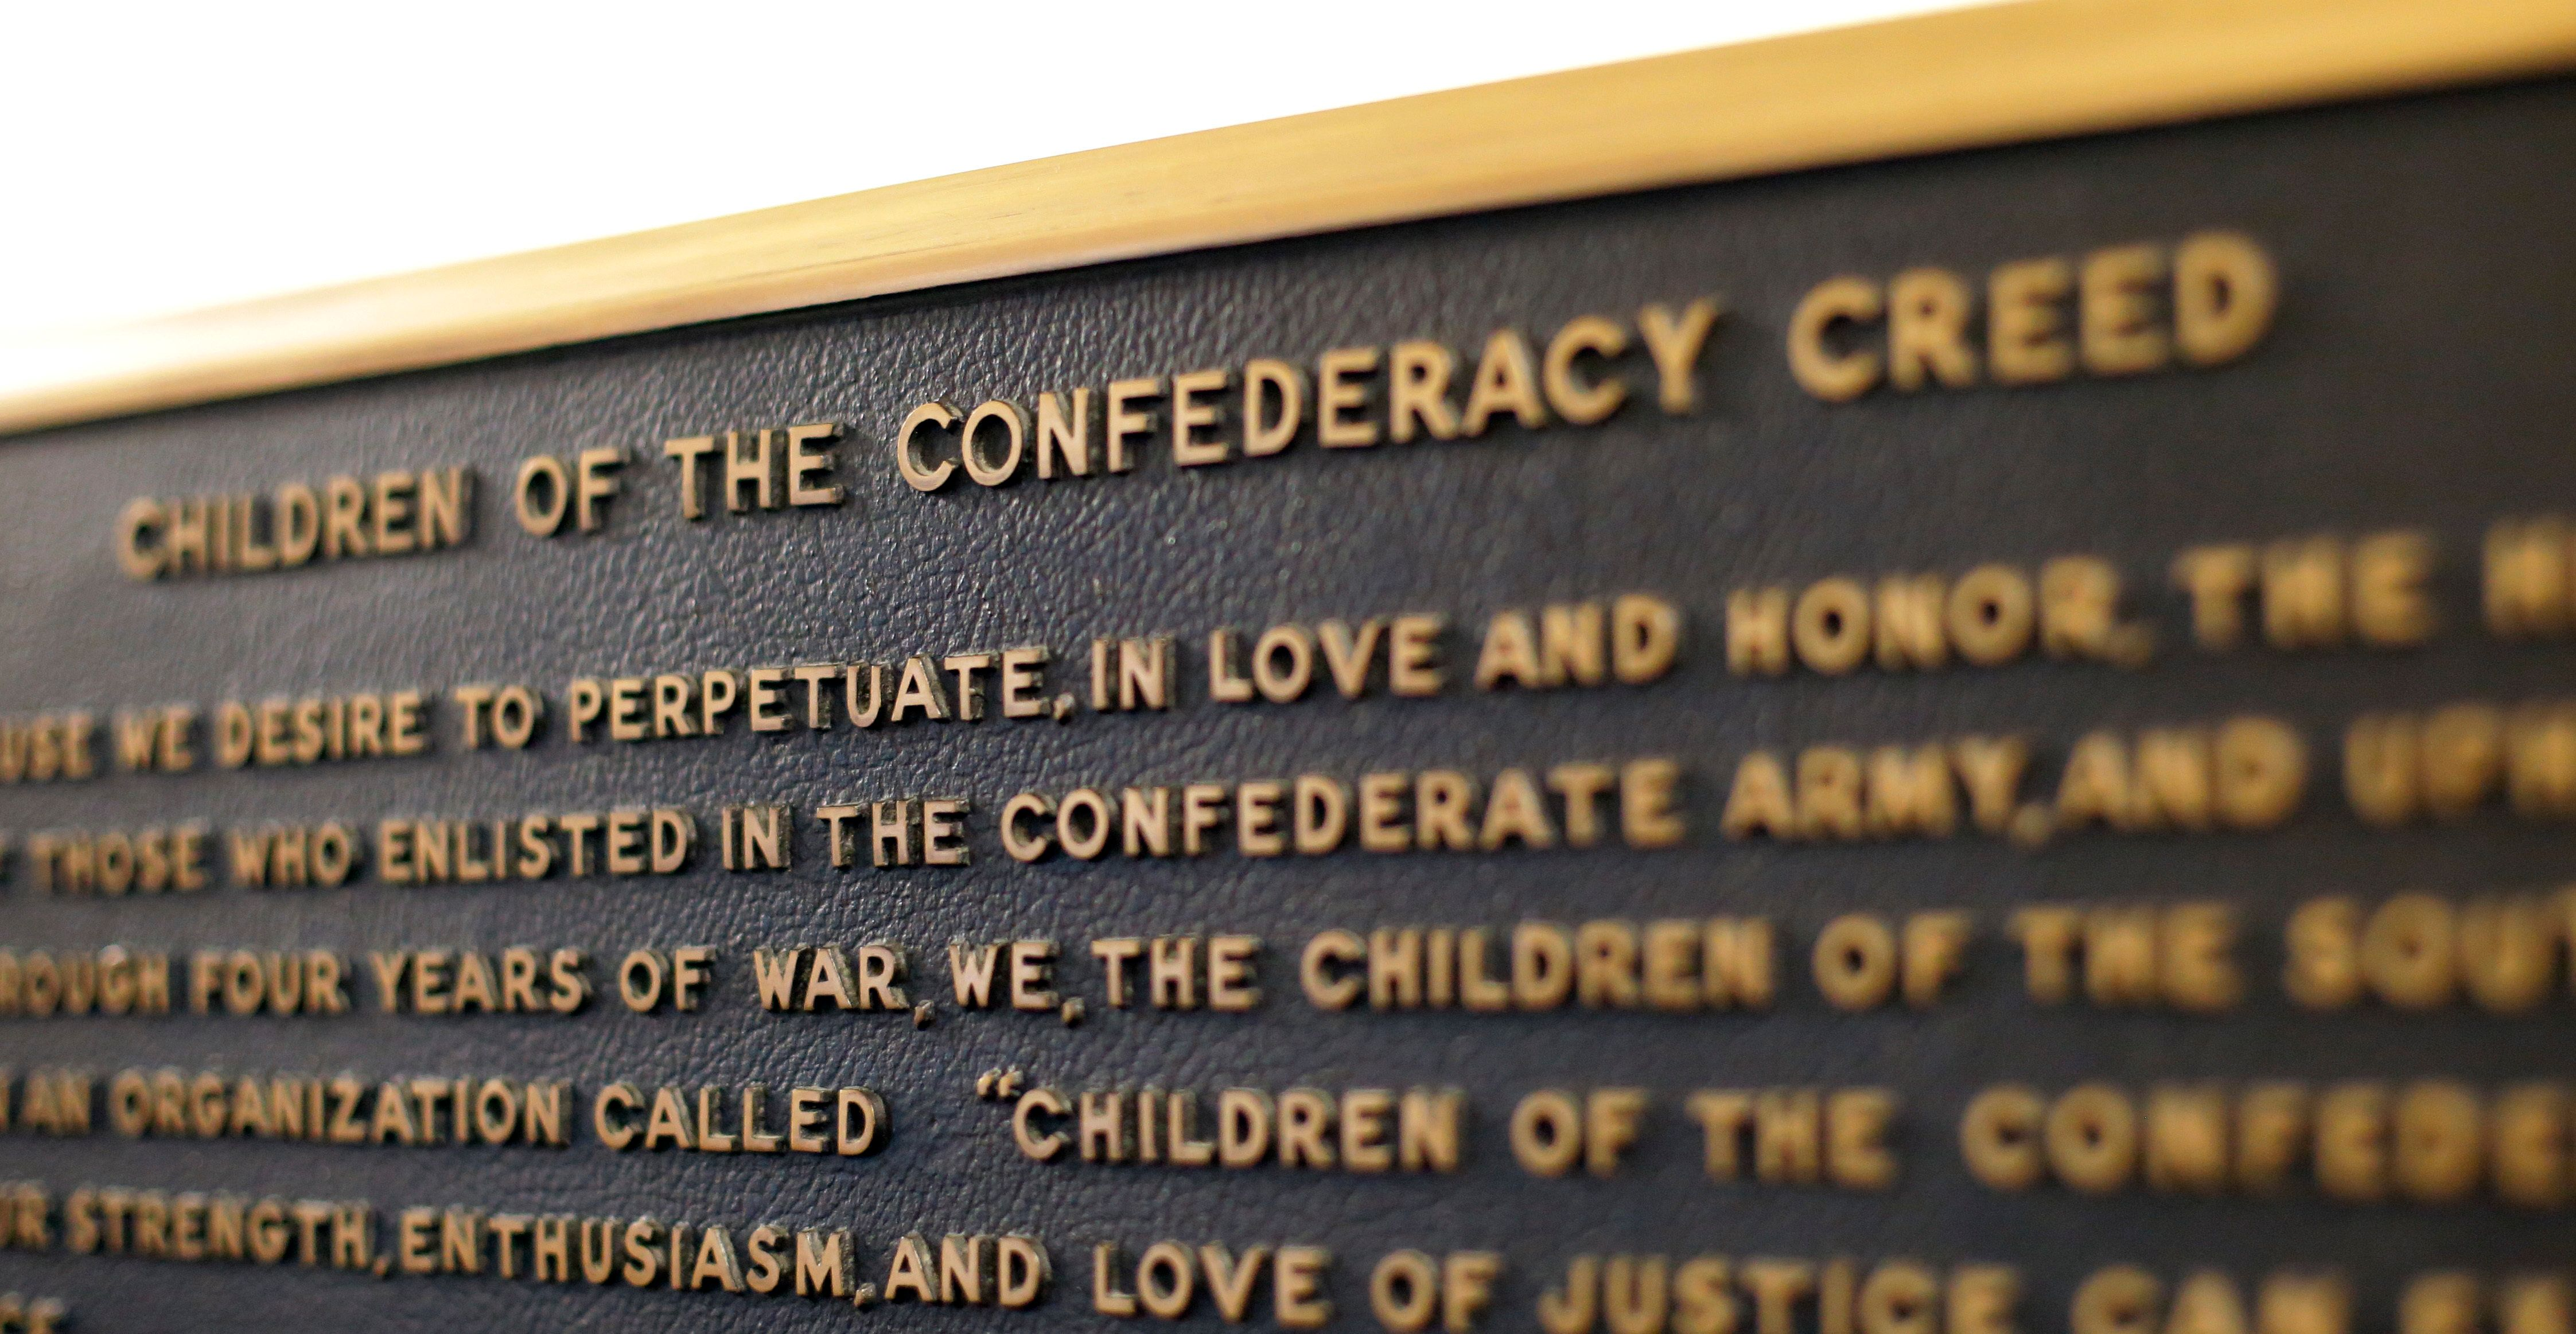 In this Monday, Aug. 21, 2017, photo, a Confederate plaque is displayed near the Rotunda in the Texas State Capitol in Austin, Texas. The Civil War lessons taught to American students often depend on where the classroom is, with schools presenting accounts of the conflict that vary from state to state and even district to district. (AP Photo/Eric Gay)